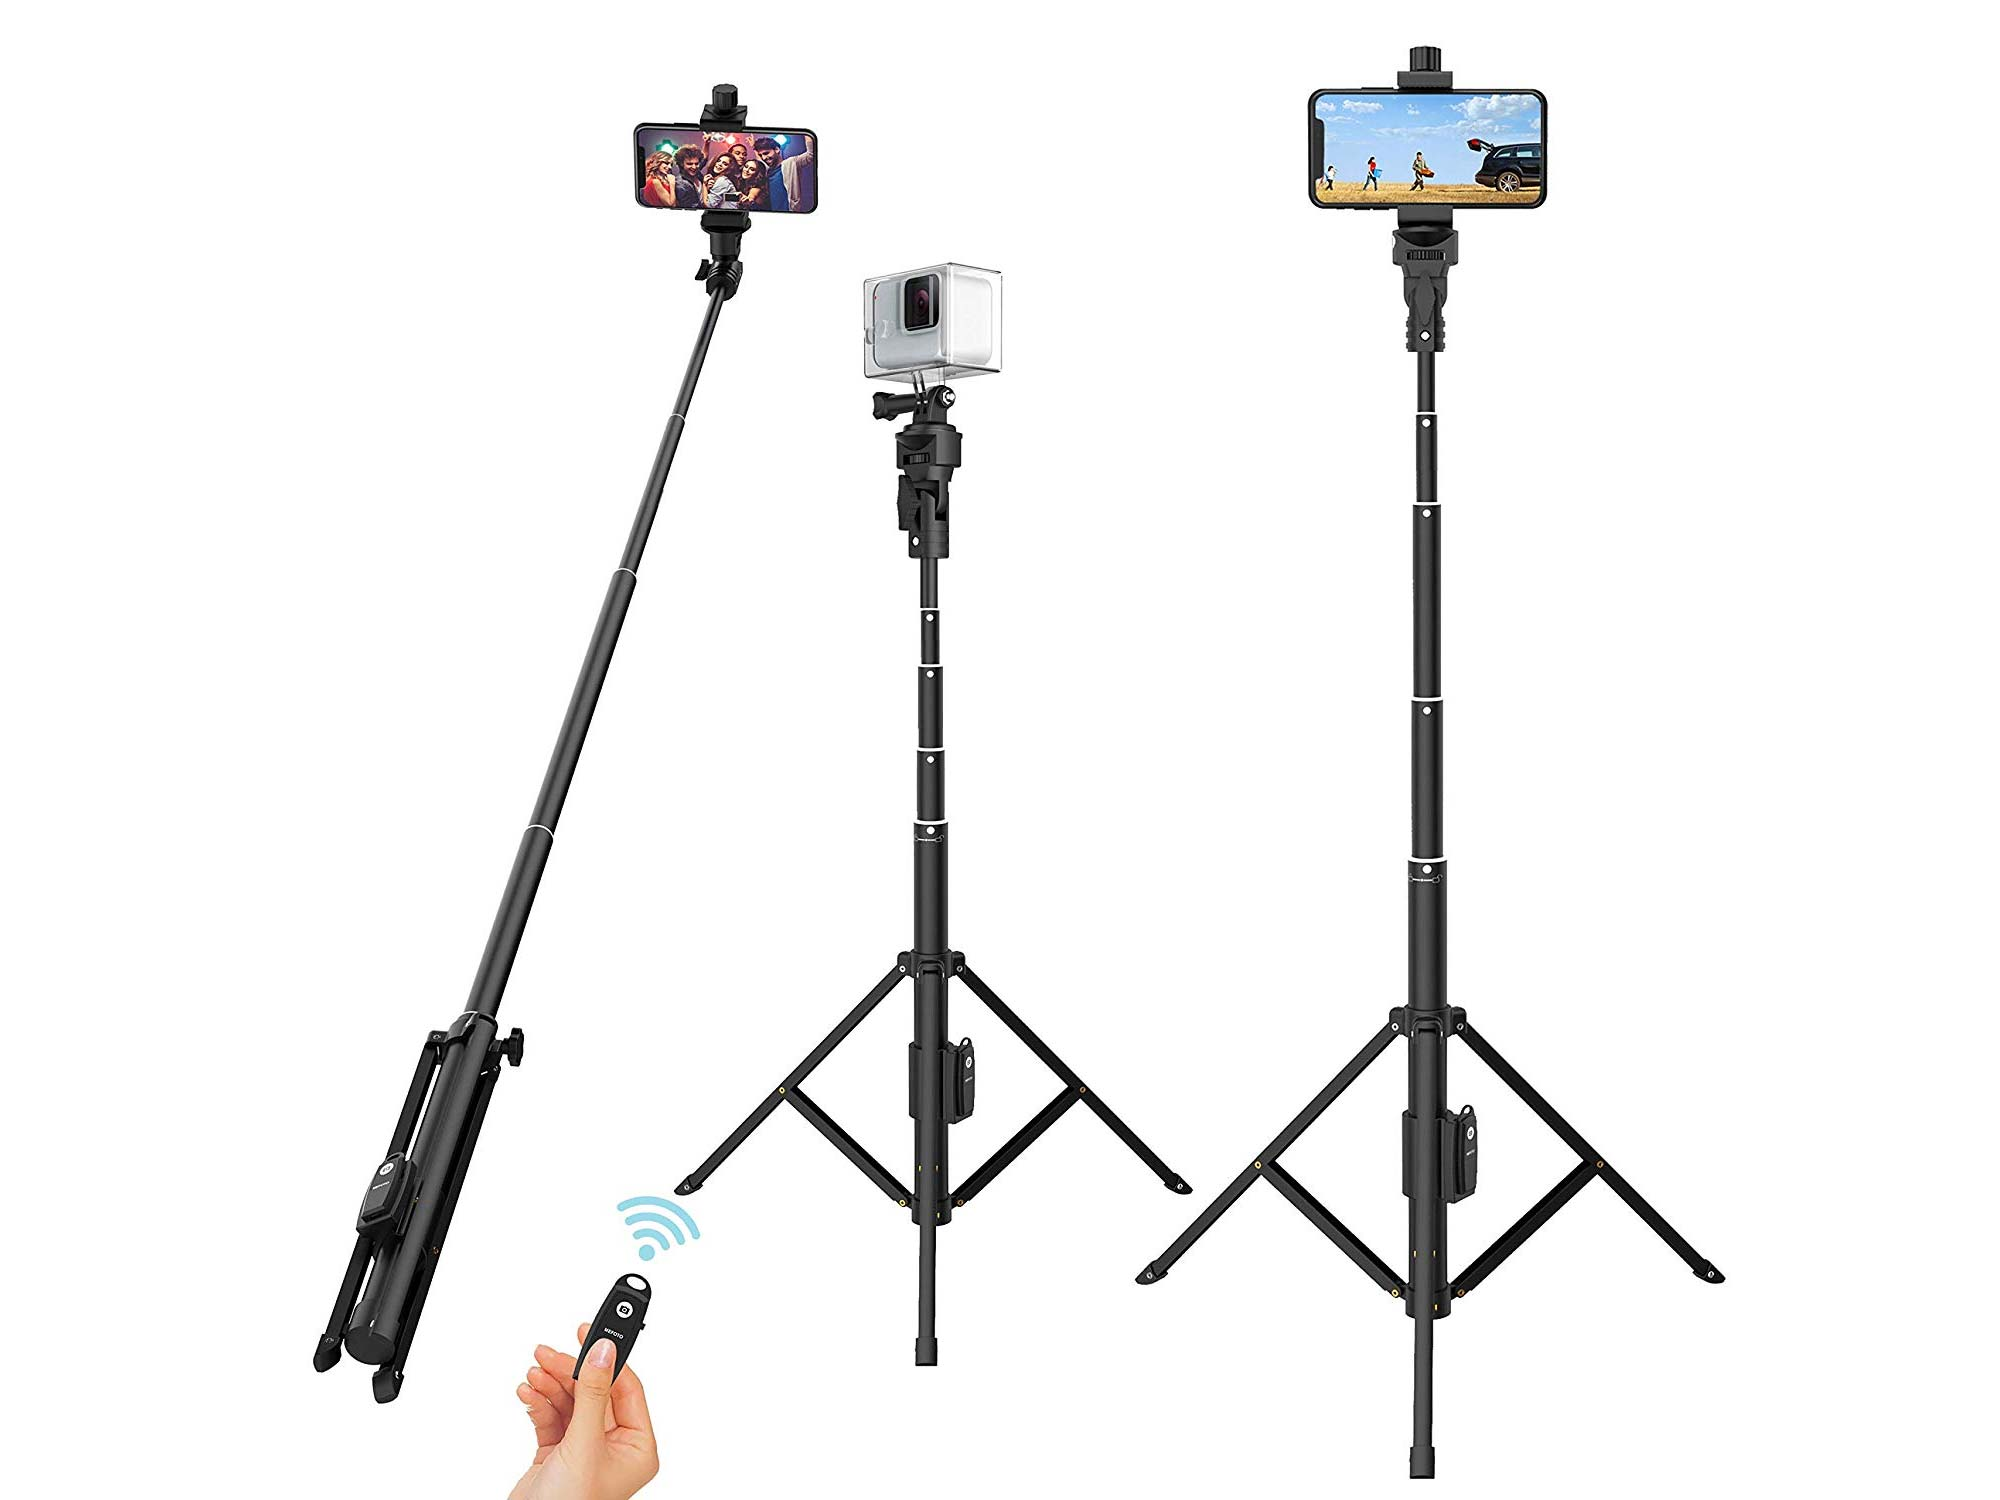 5 Features You Need in a Camera Tripod